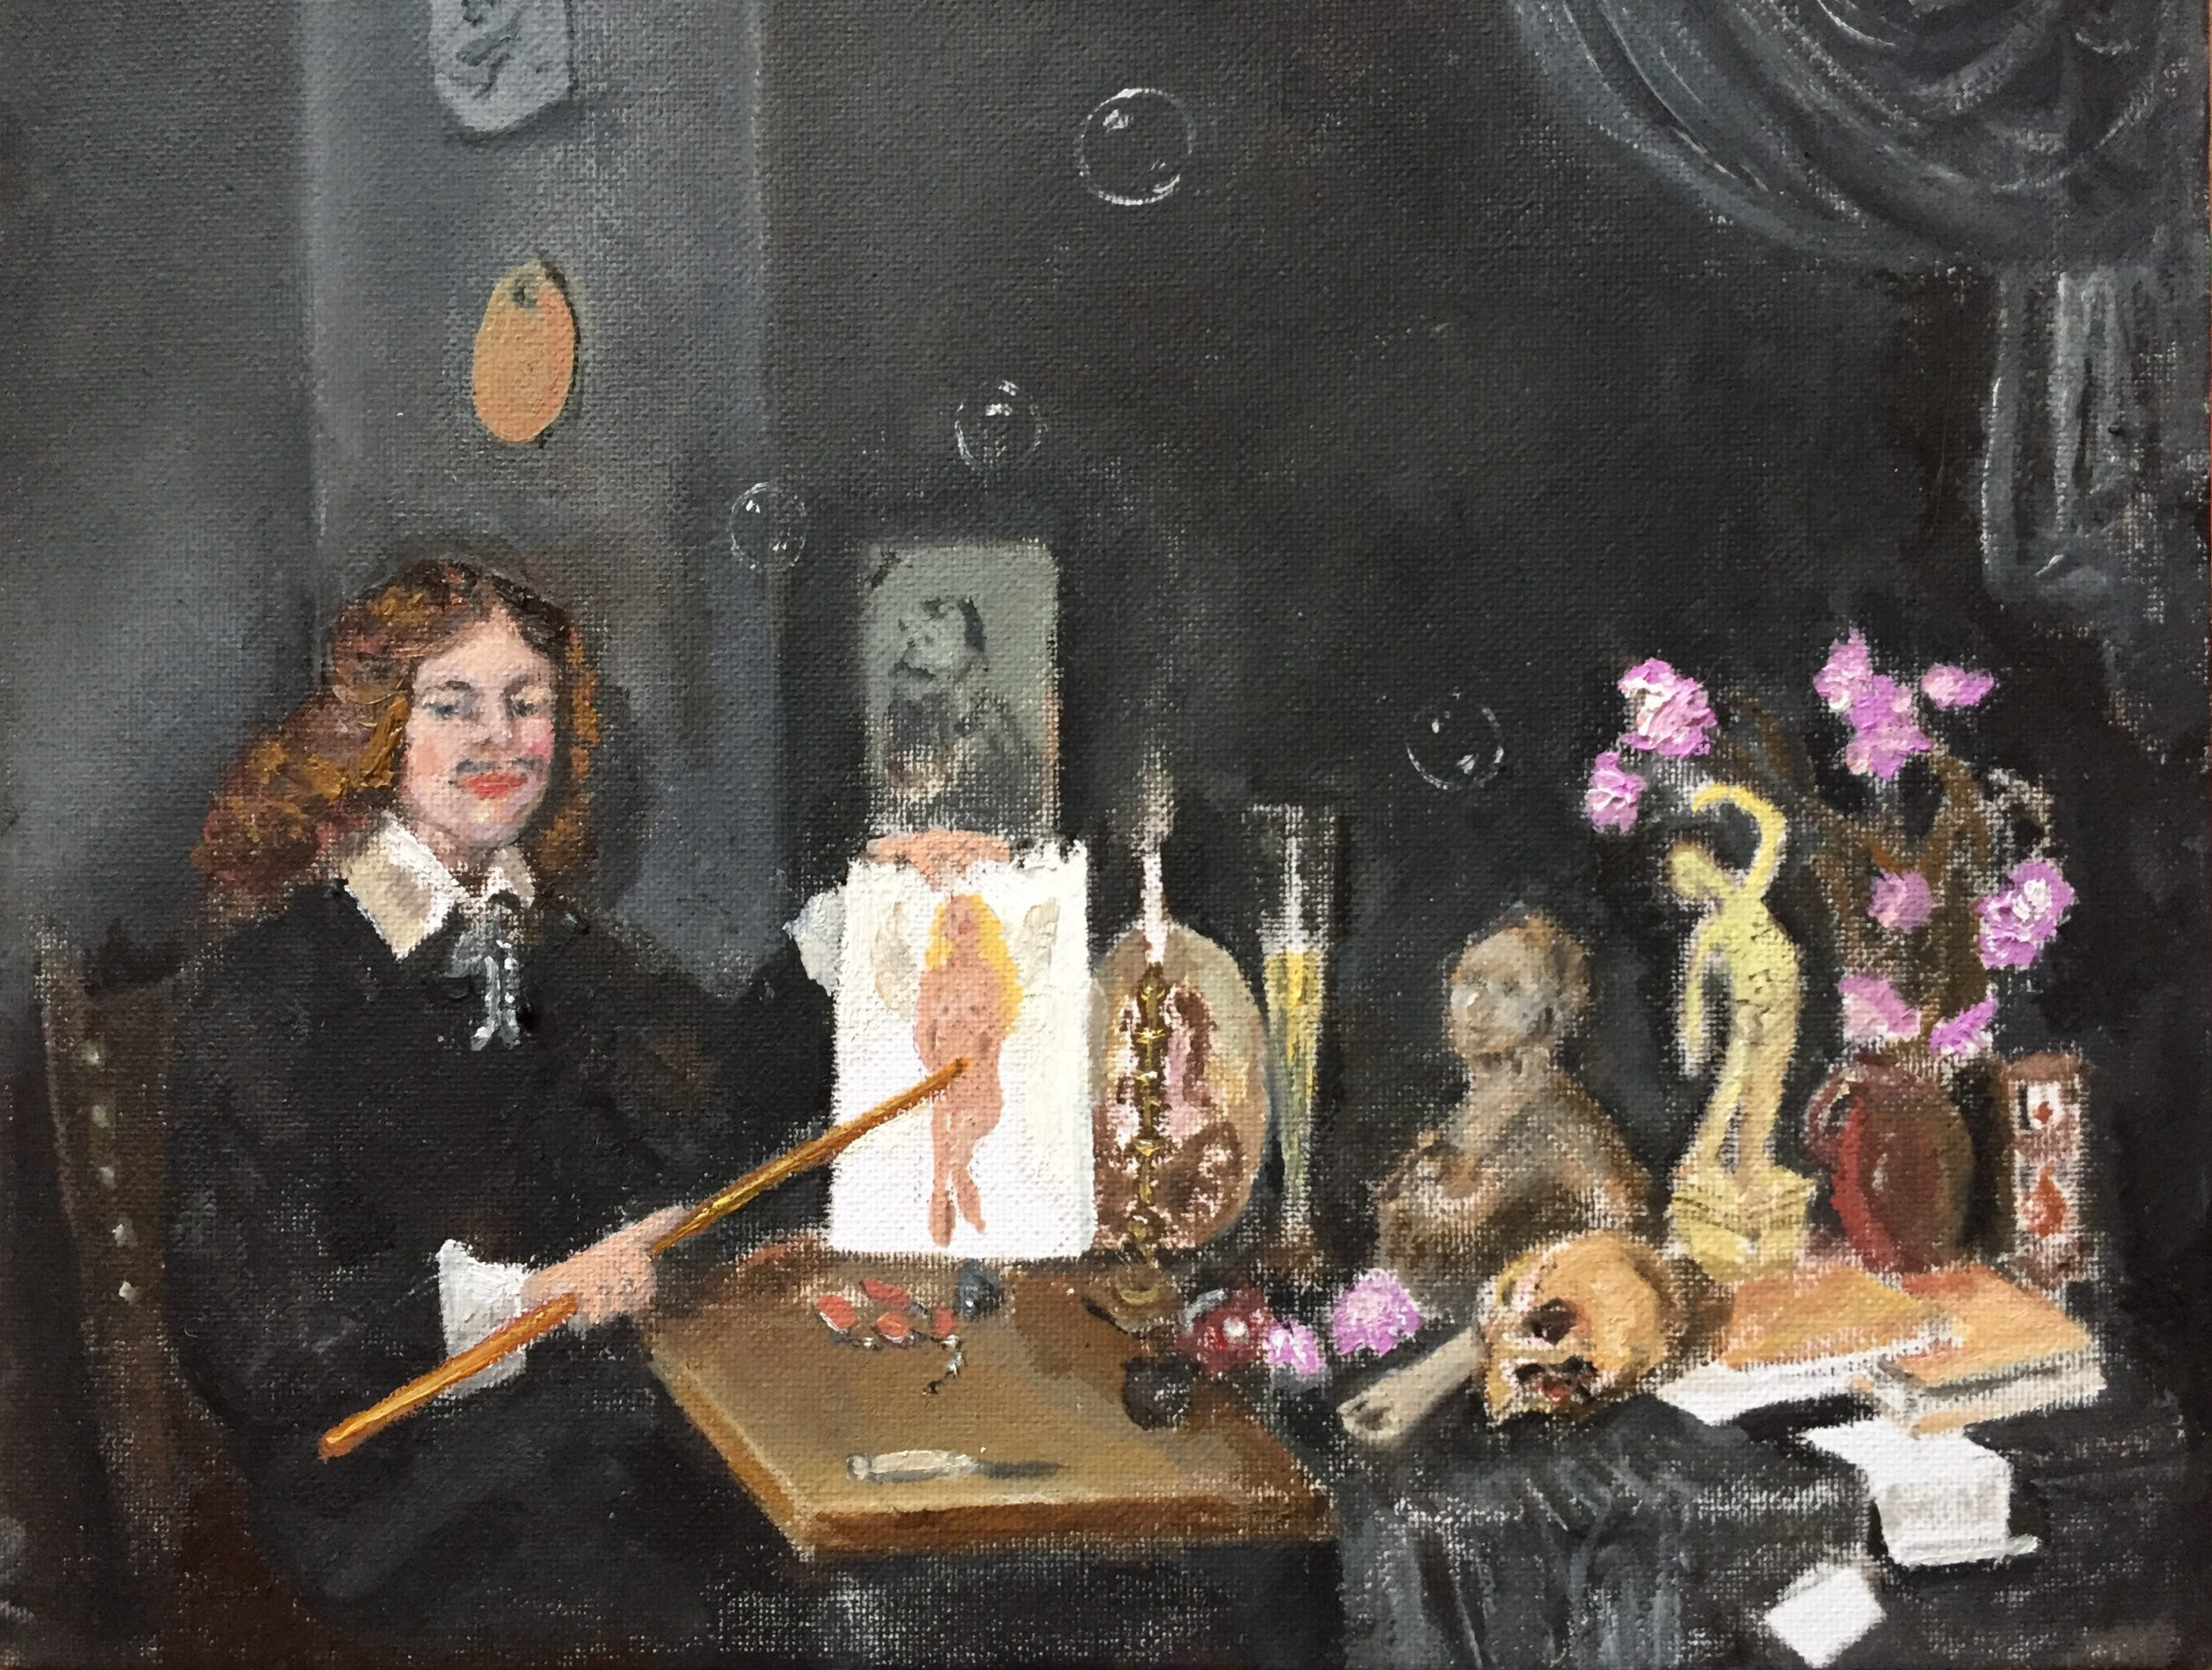 Zij Is Mijn Engel, based on David Bailly's Self-Portrait With Vanitas Symbols 1651